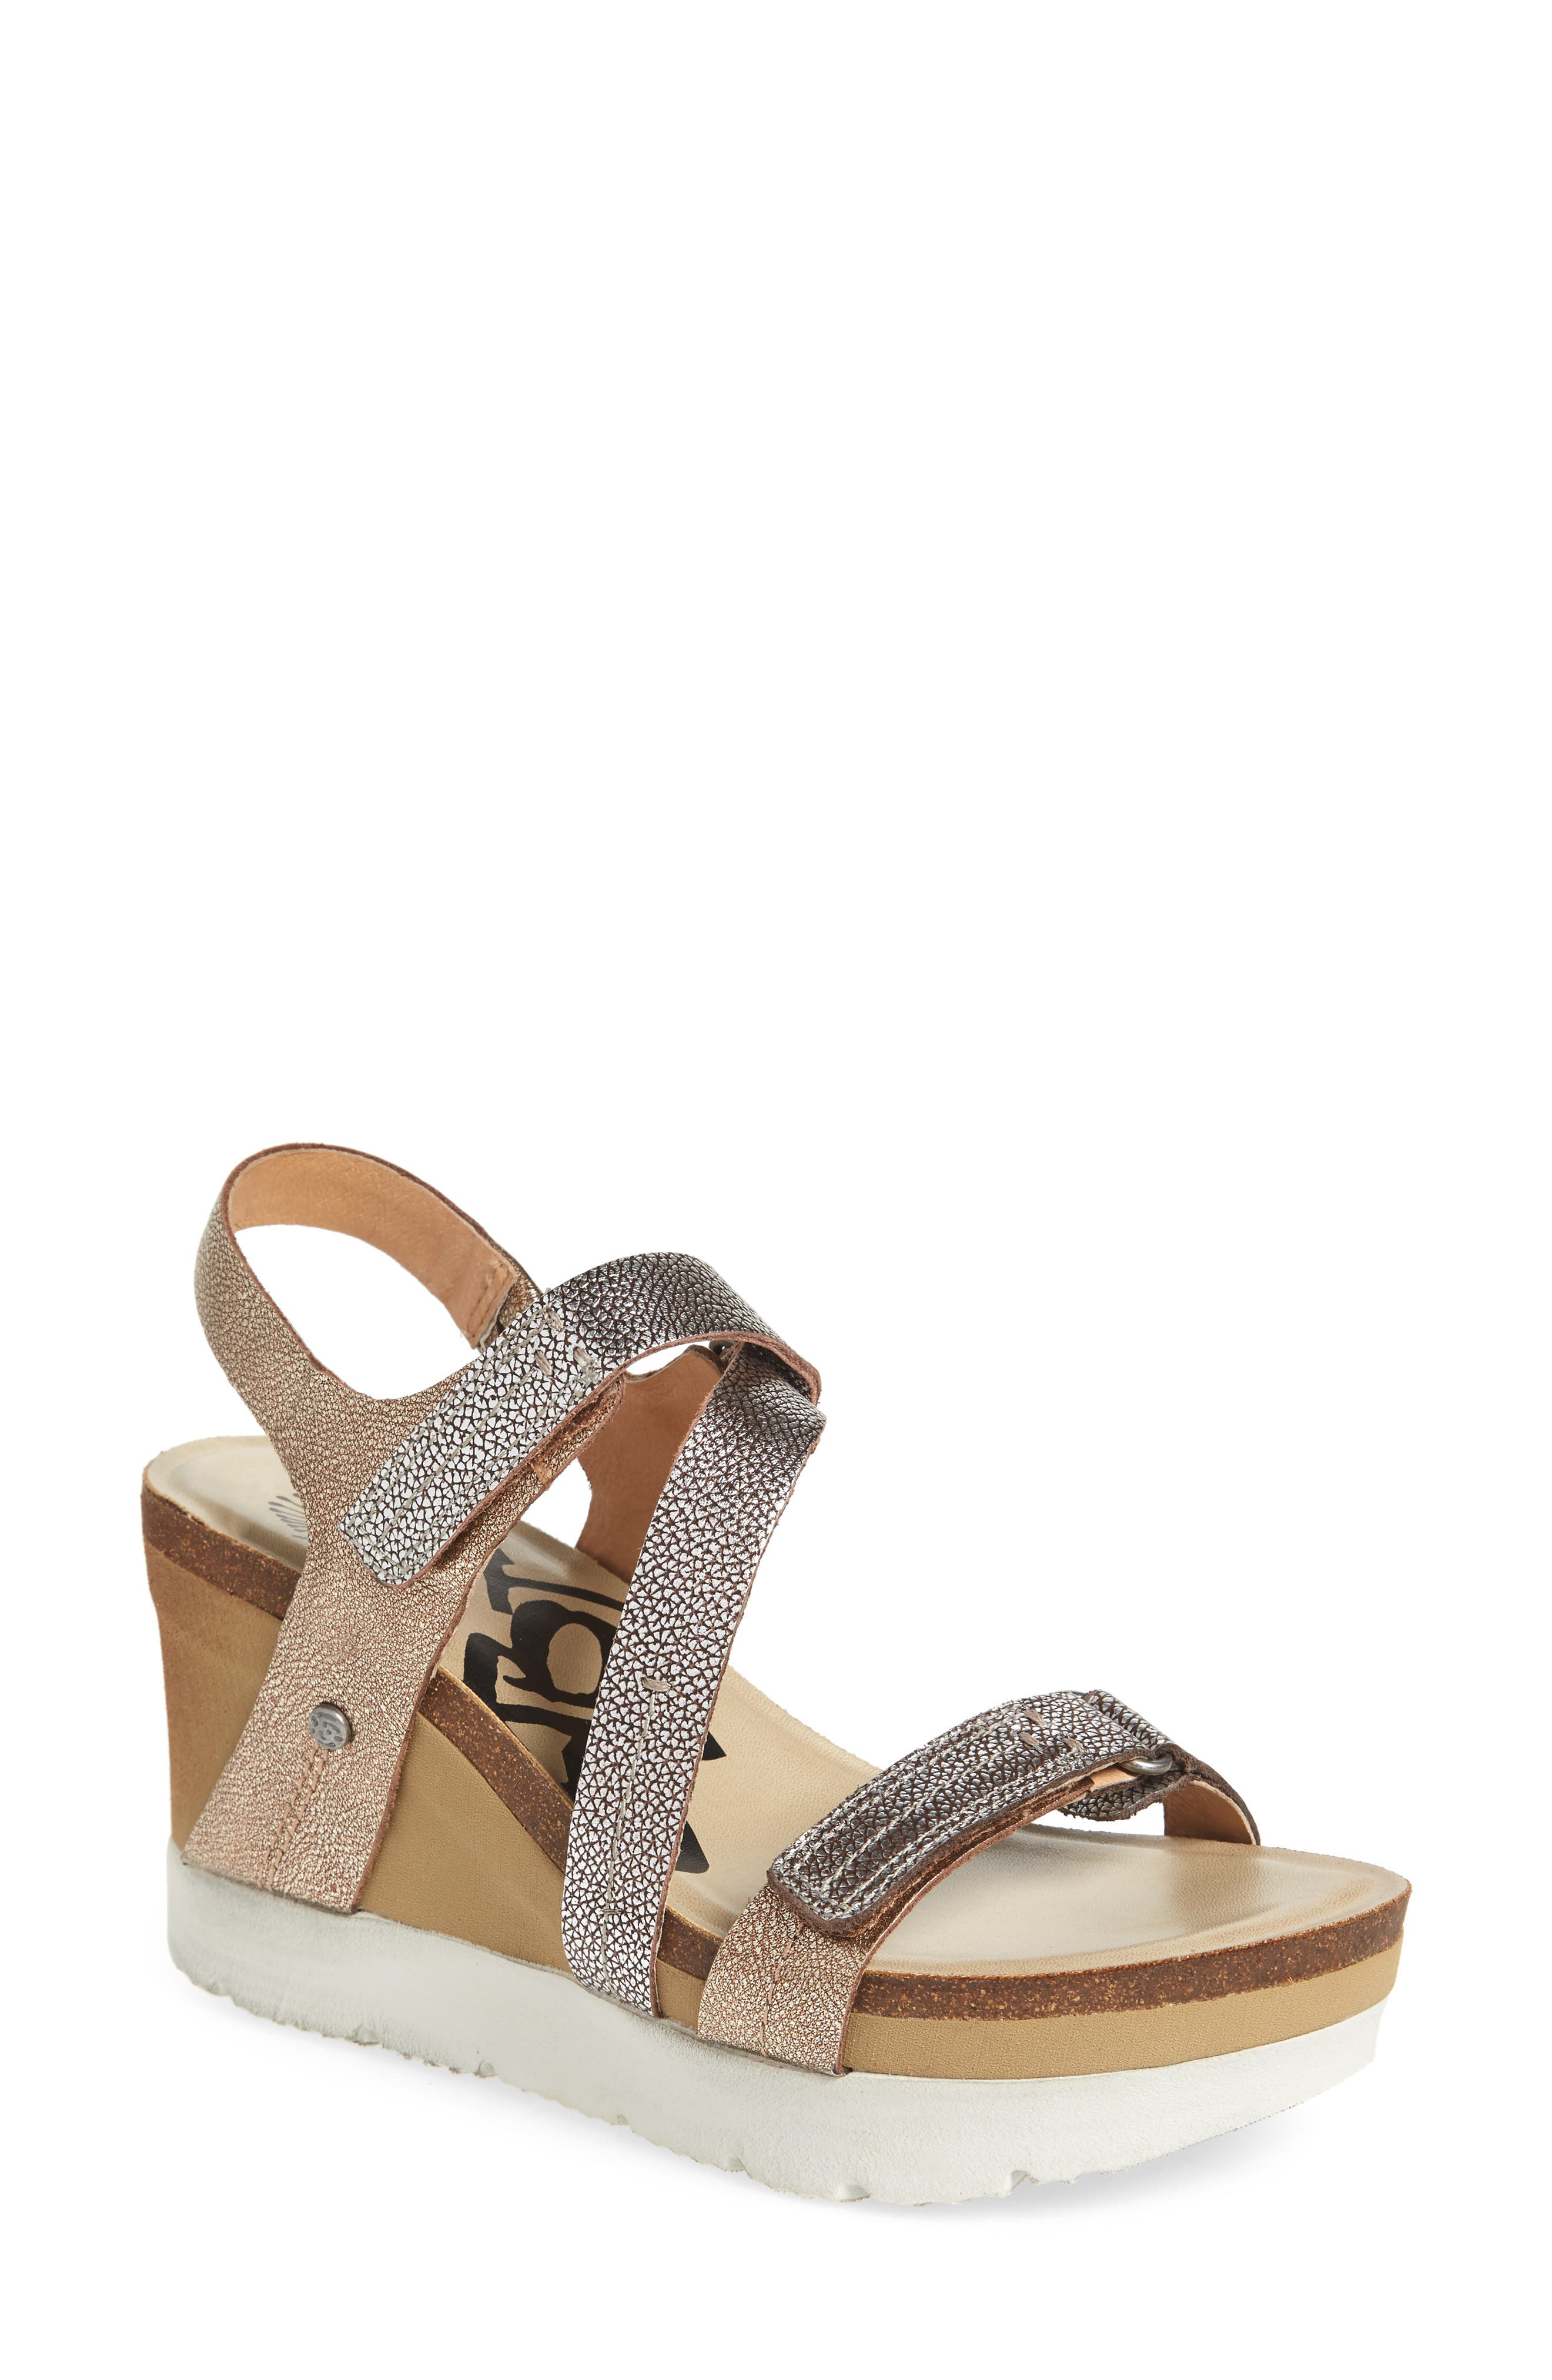 Wavey Wedge Sandal,                             Main thumbnail 1, color,                             Gold Leather